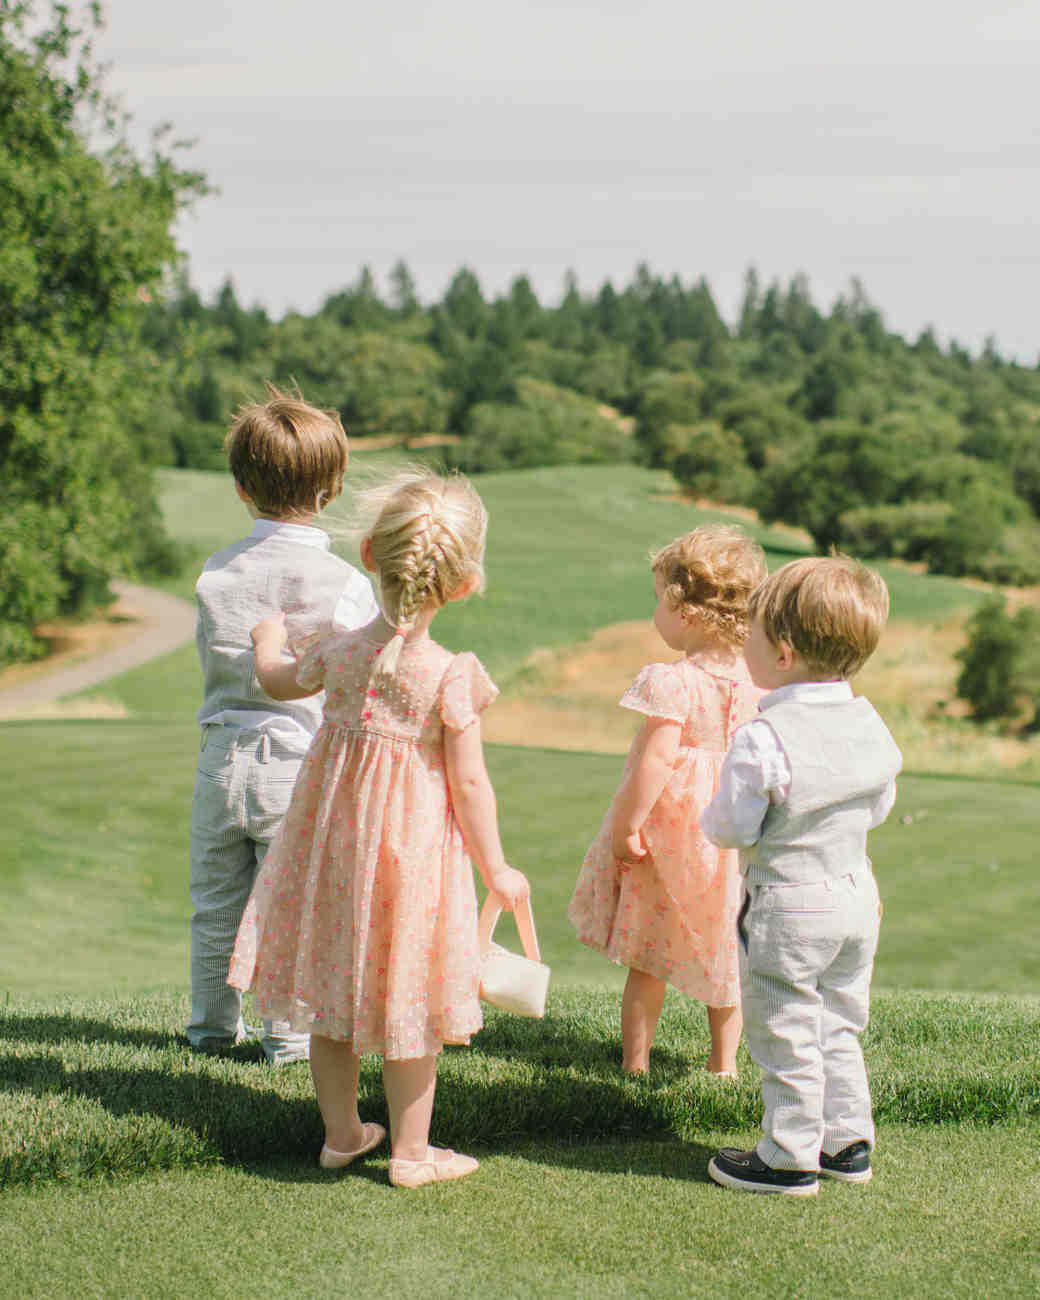 hanna-stephen-wedding-kids-0624-s111737-0115.jpg